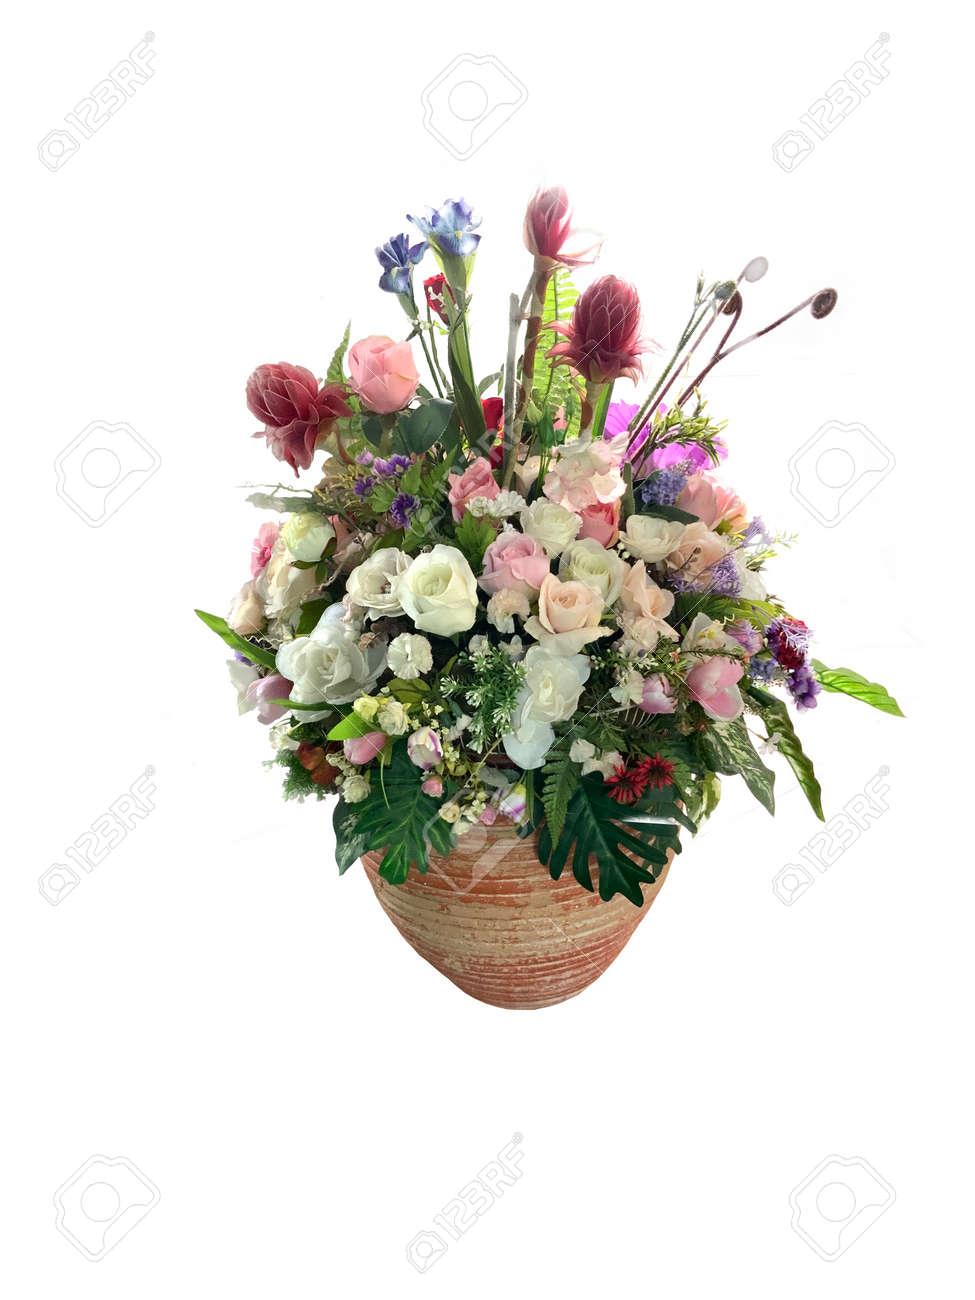 White, red and pink flowers in a vase isolated on a white background - 159269111